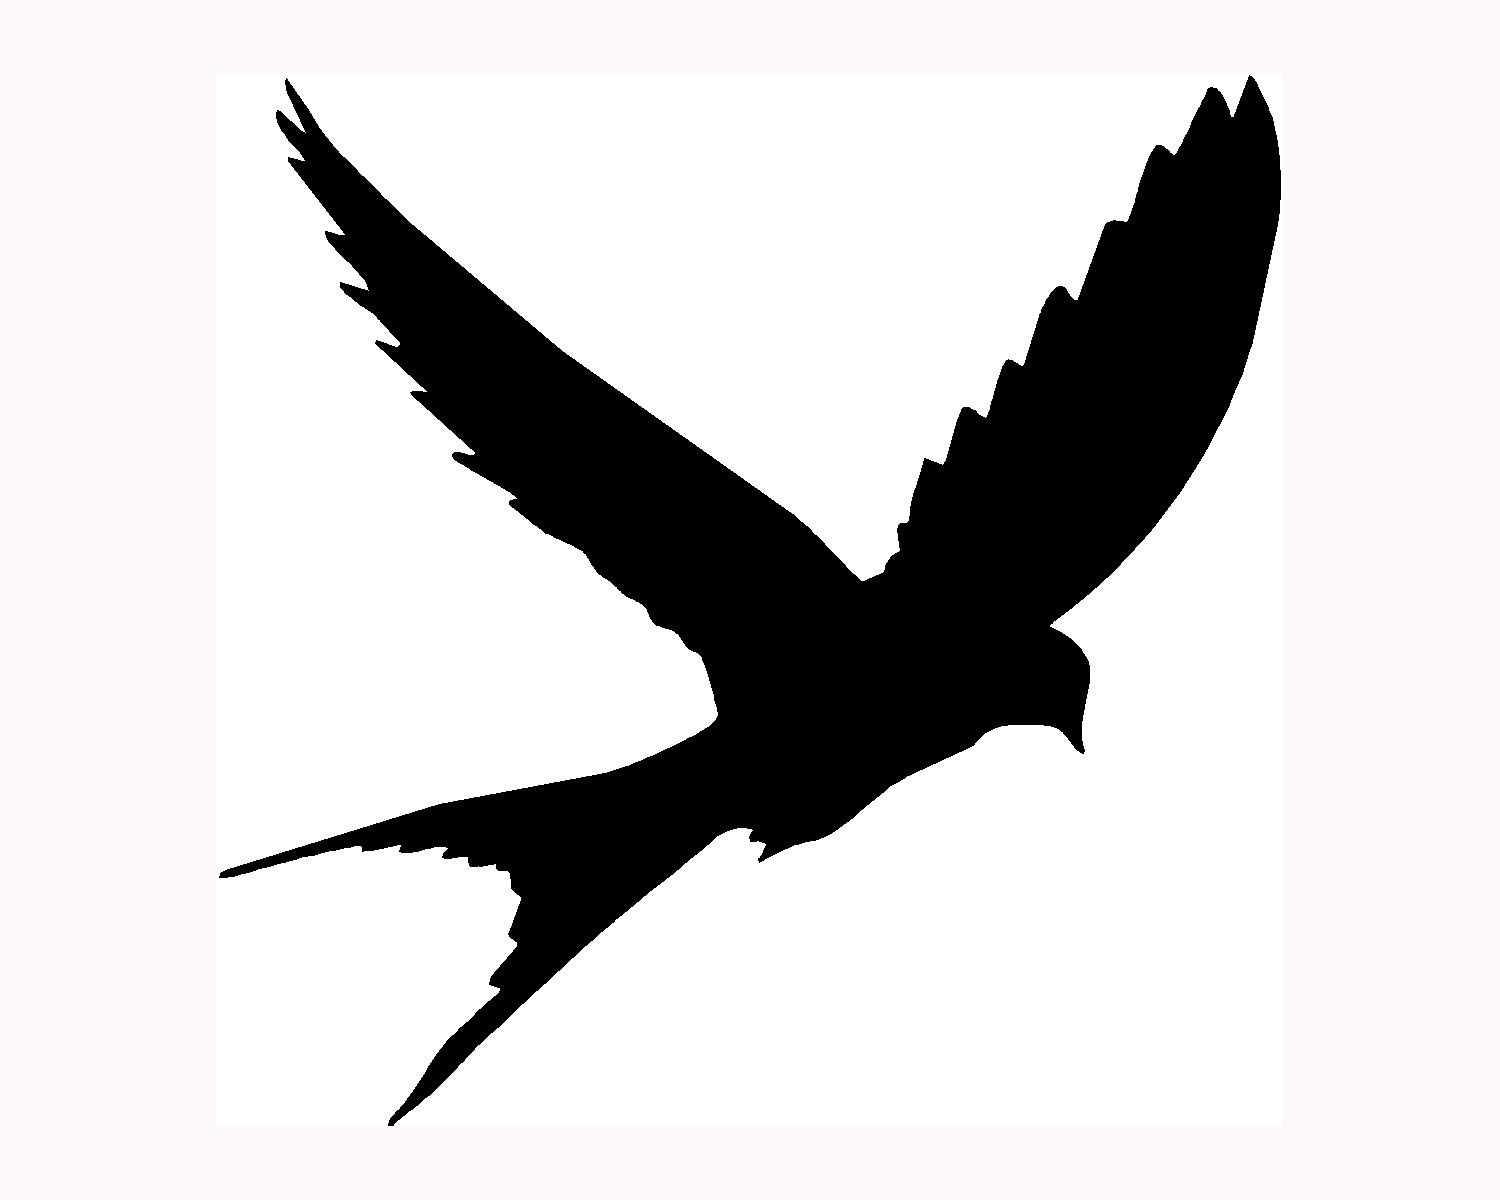 Flying Bird Silhouette Clipart.